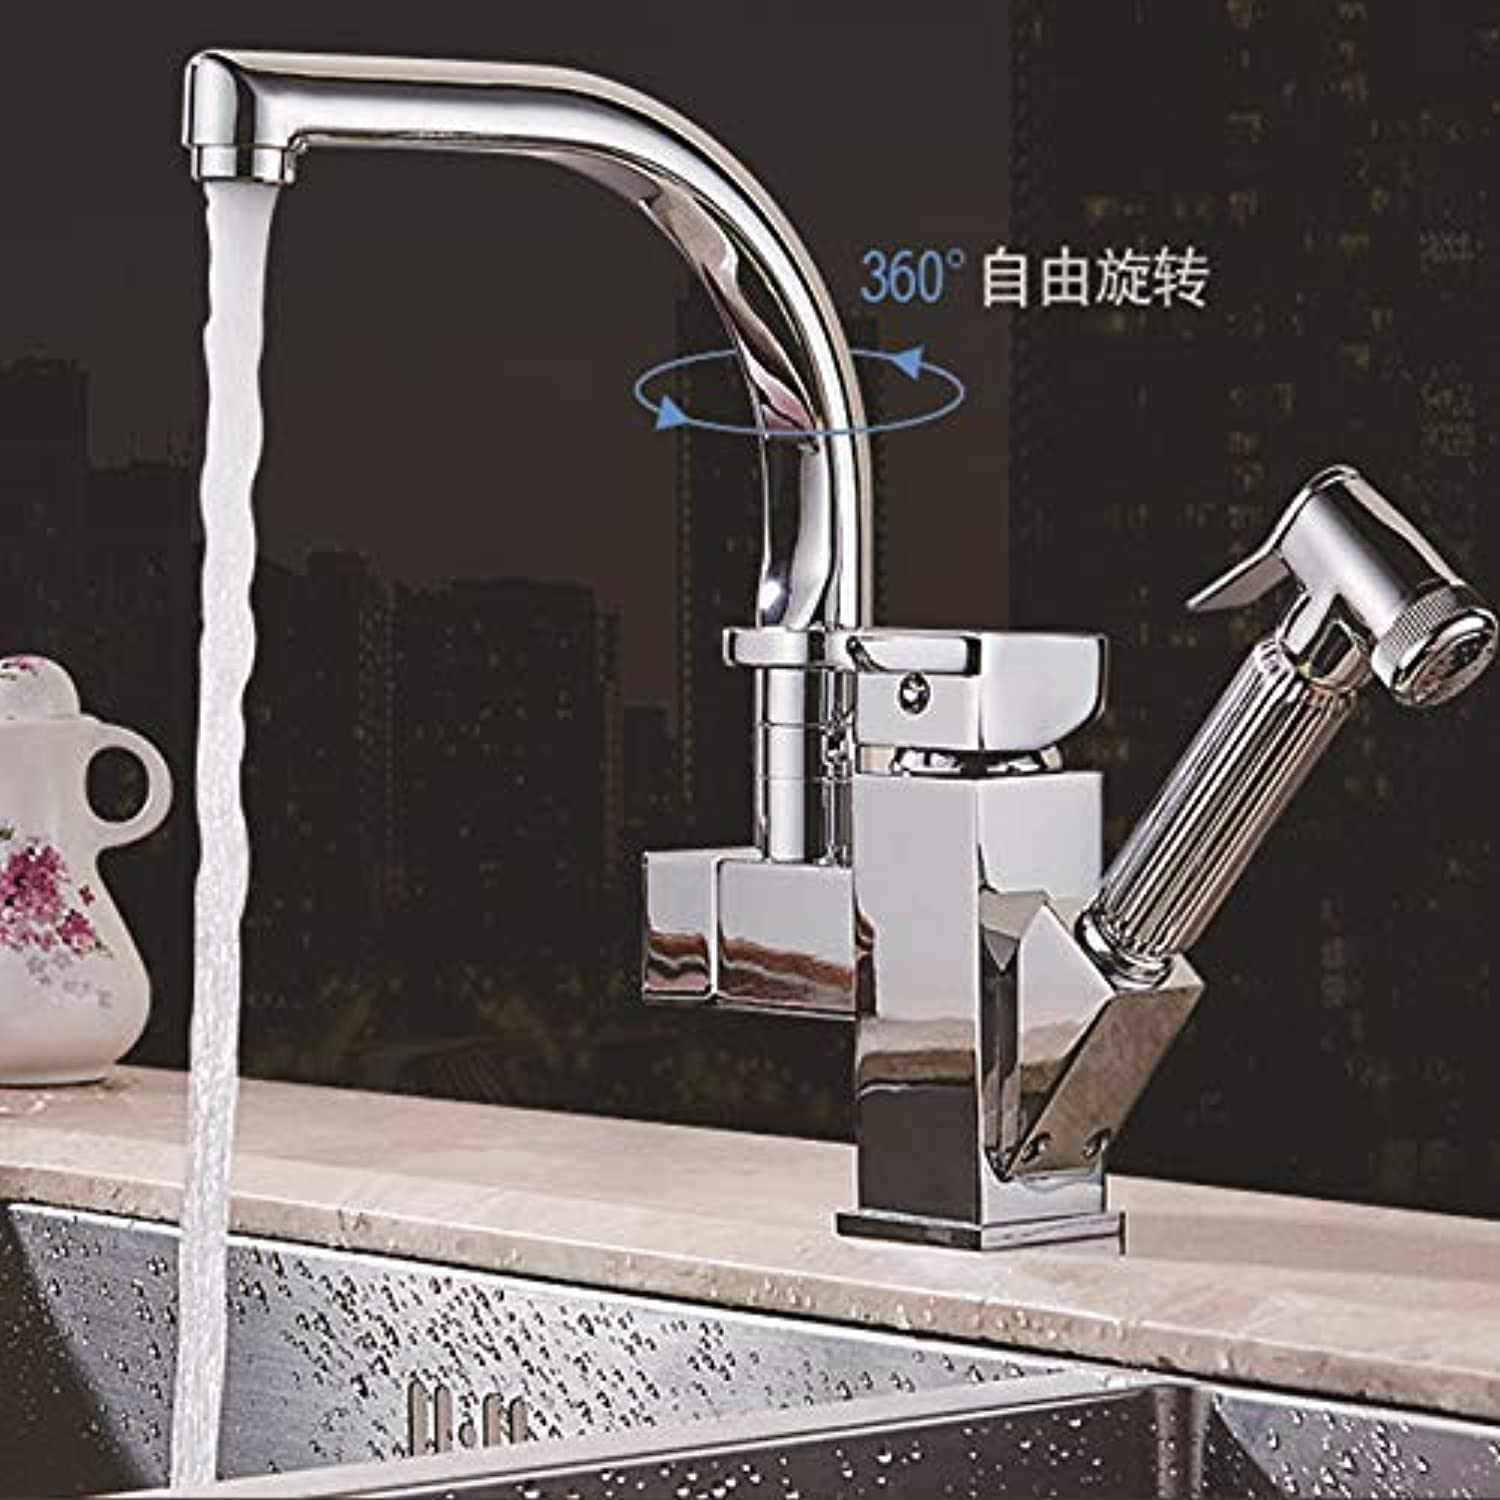 SEBAS HOME Taps Faucet Dish Basin Hot And Cold Faucet Kitchen Faucet Sink Sink Copper Hot And Cold Faucet Multi-Function Pull-Out Faucet